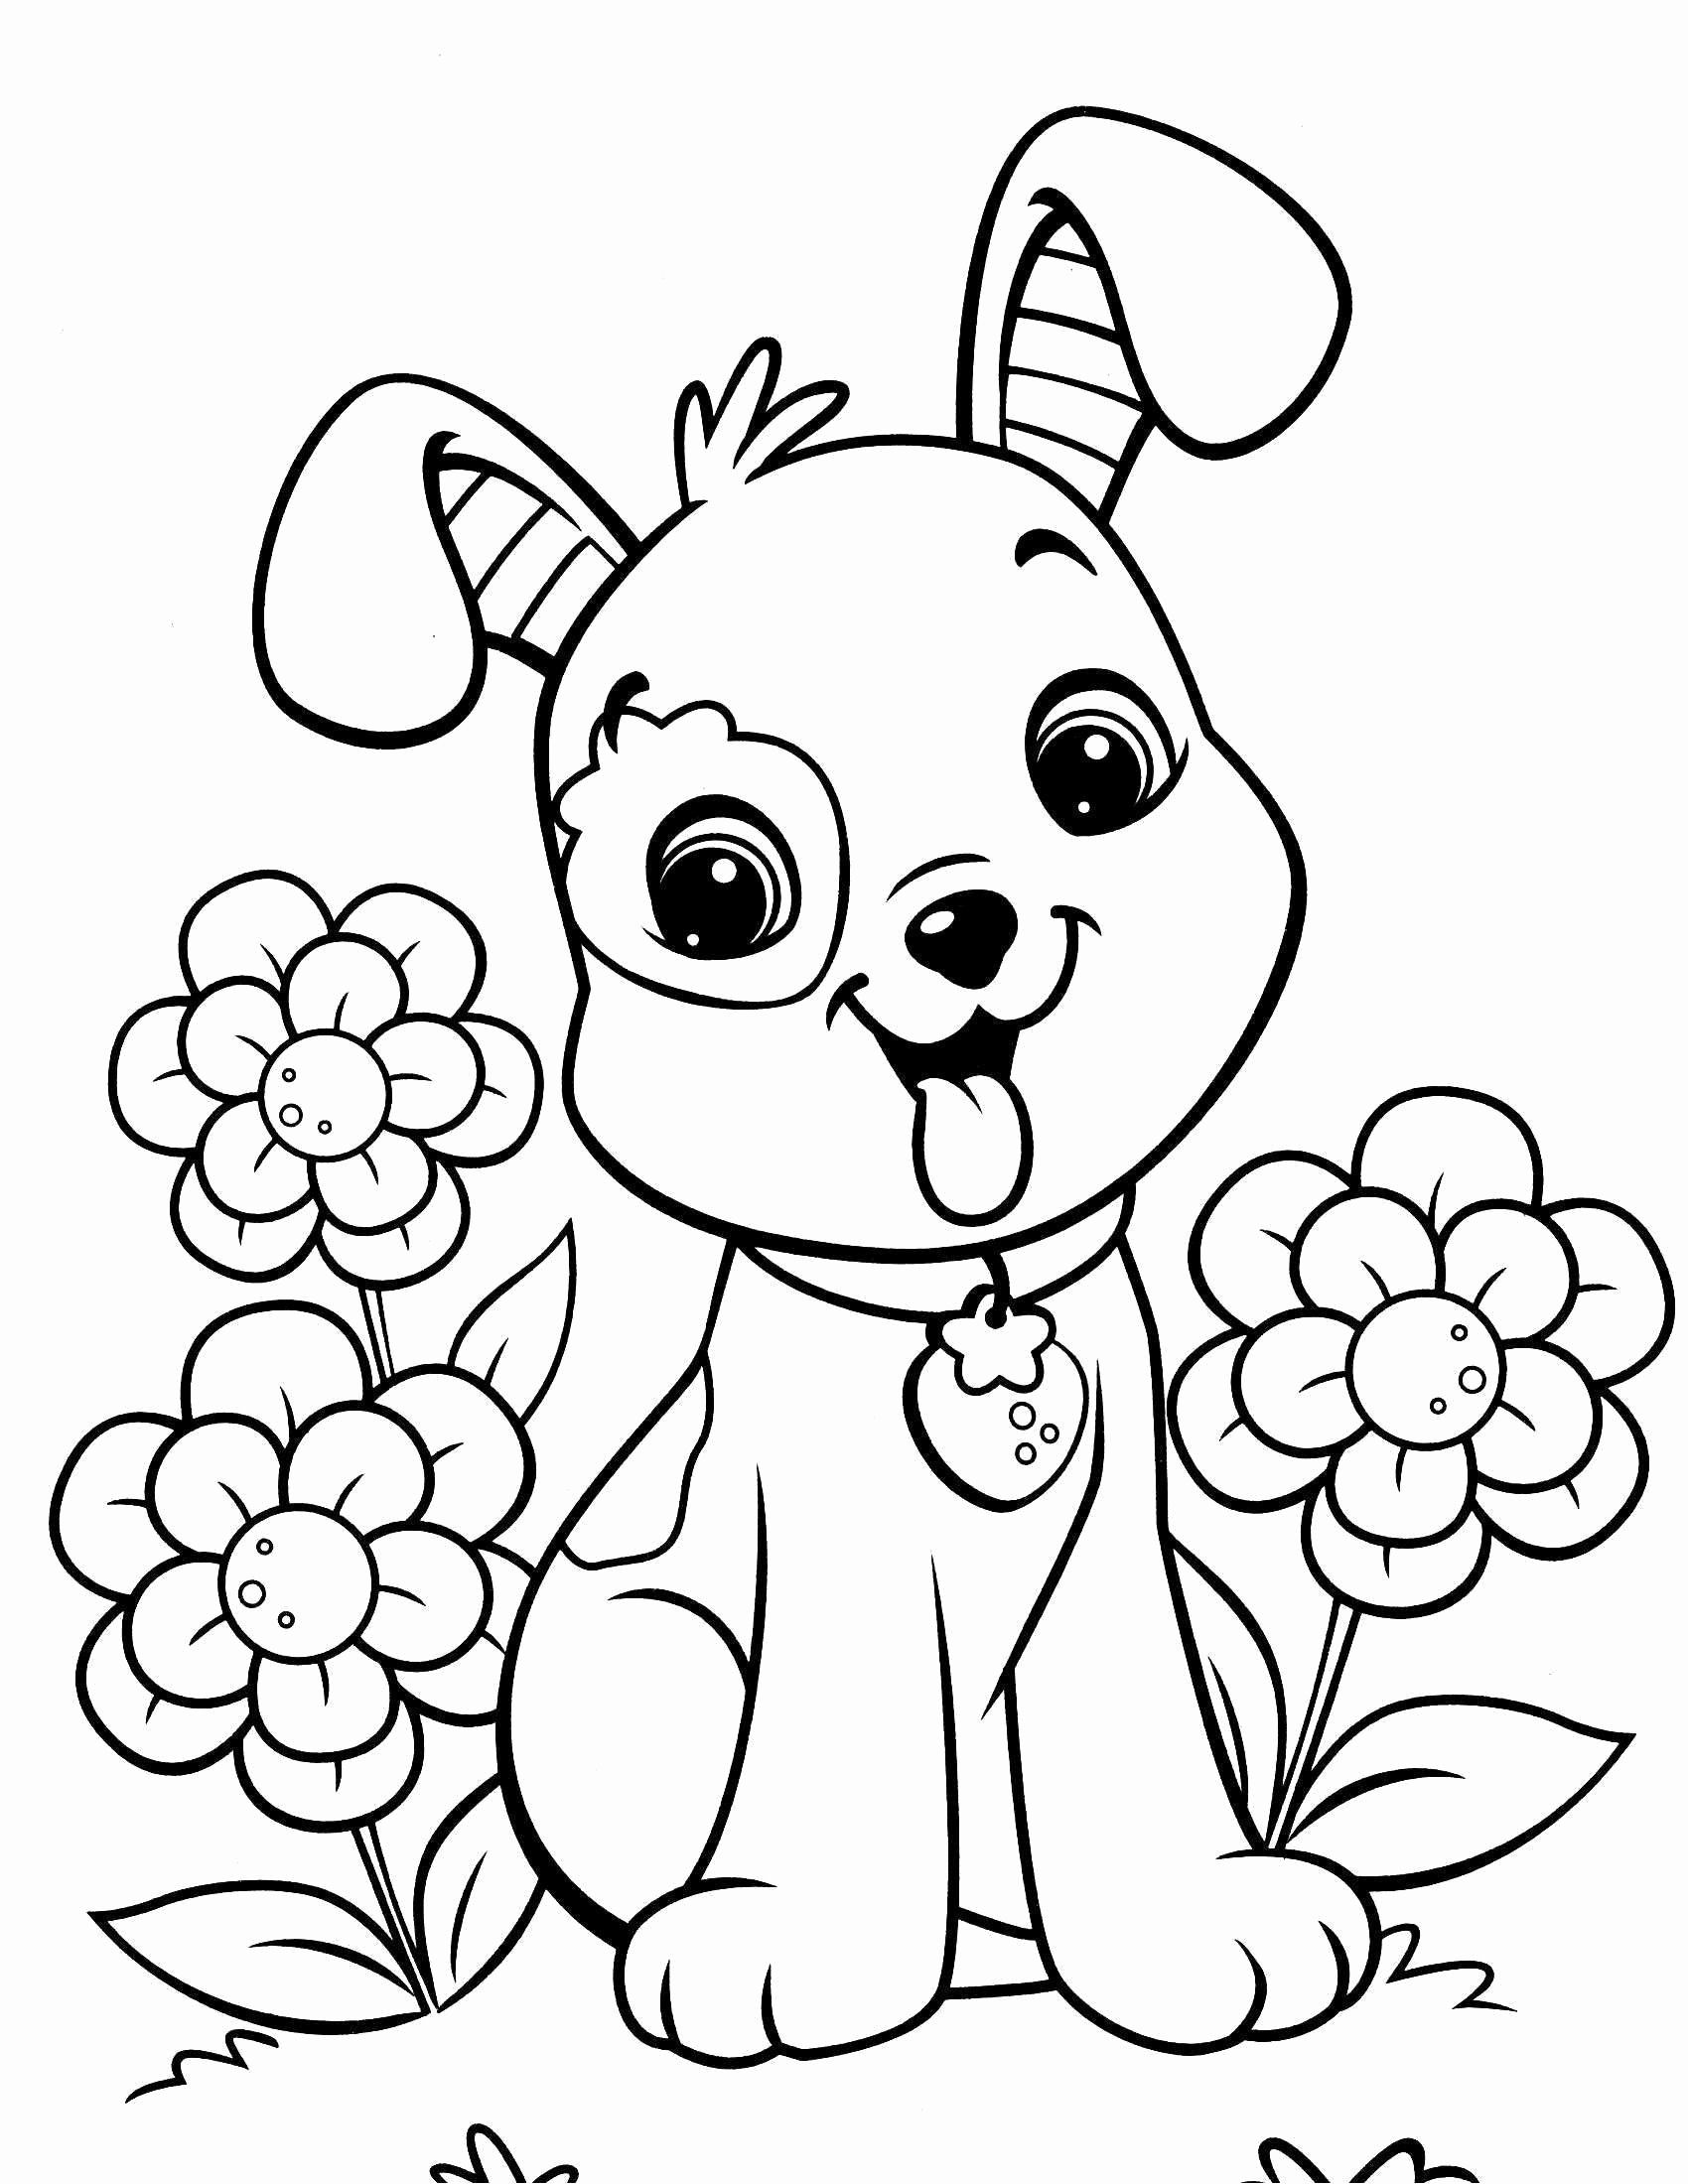 Fox Cute Baby Animal Coloring Pages for Kids in 2020 ...